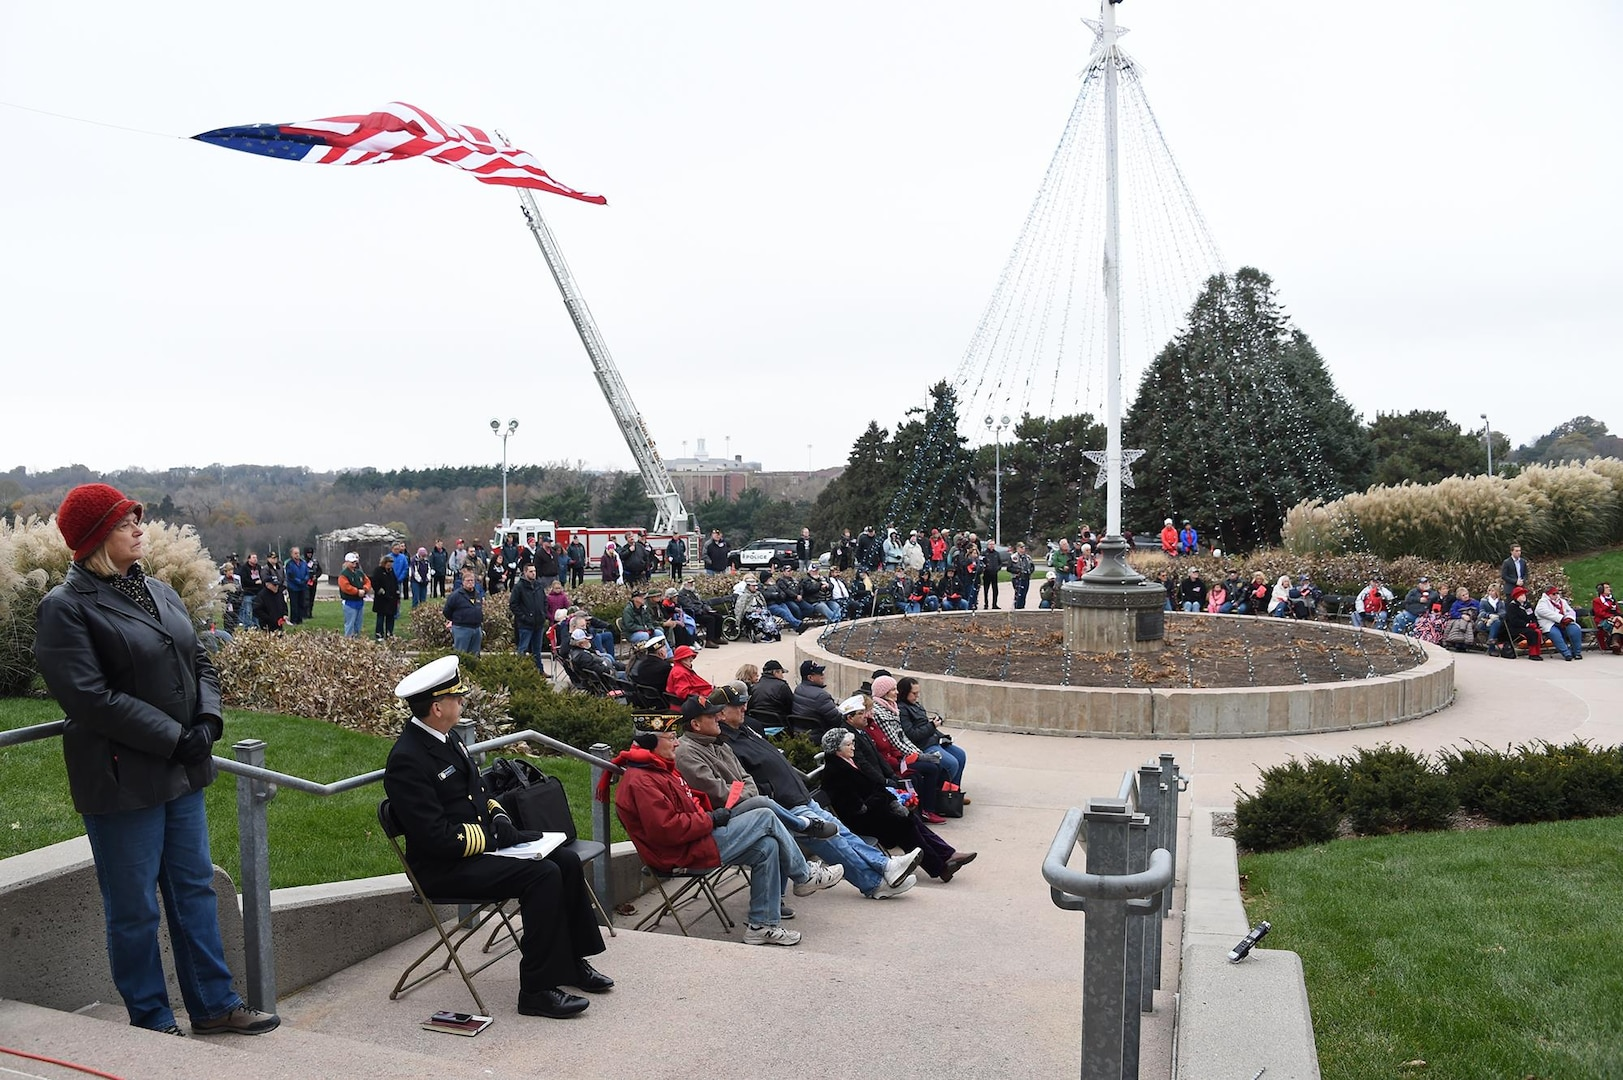 Veterans and other members of the Omaha community listen to speakers during a Veterans Day ceremony at Memorial Park in Omaha, Neb., Nov. 11, 2017. More than 200 people attended the ceremony to honor the service and sacrifice of American veterans and their families.